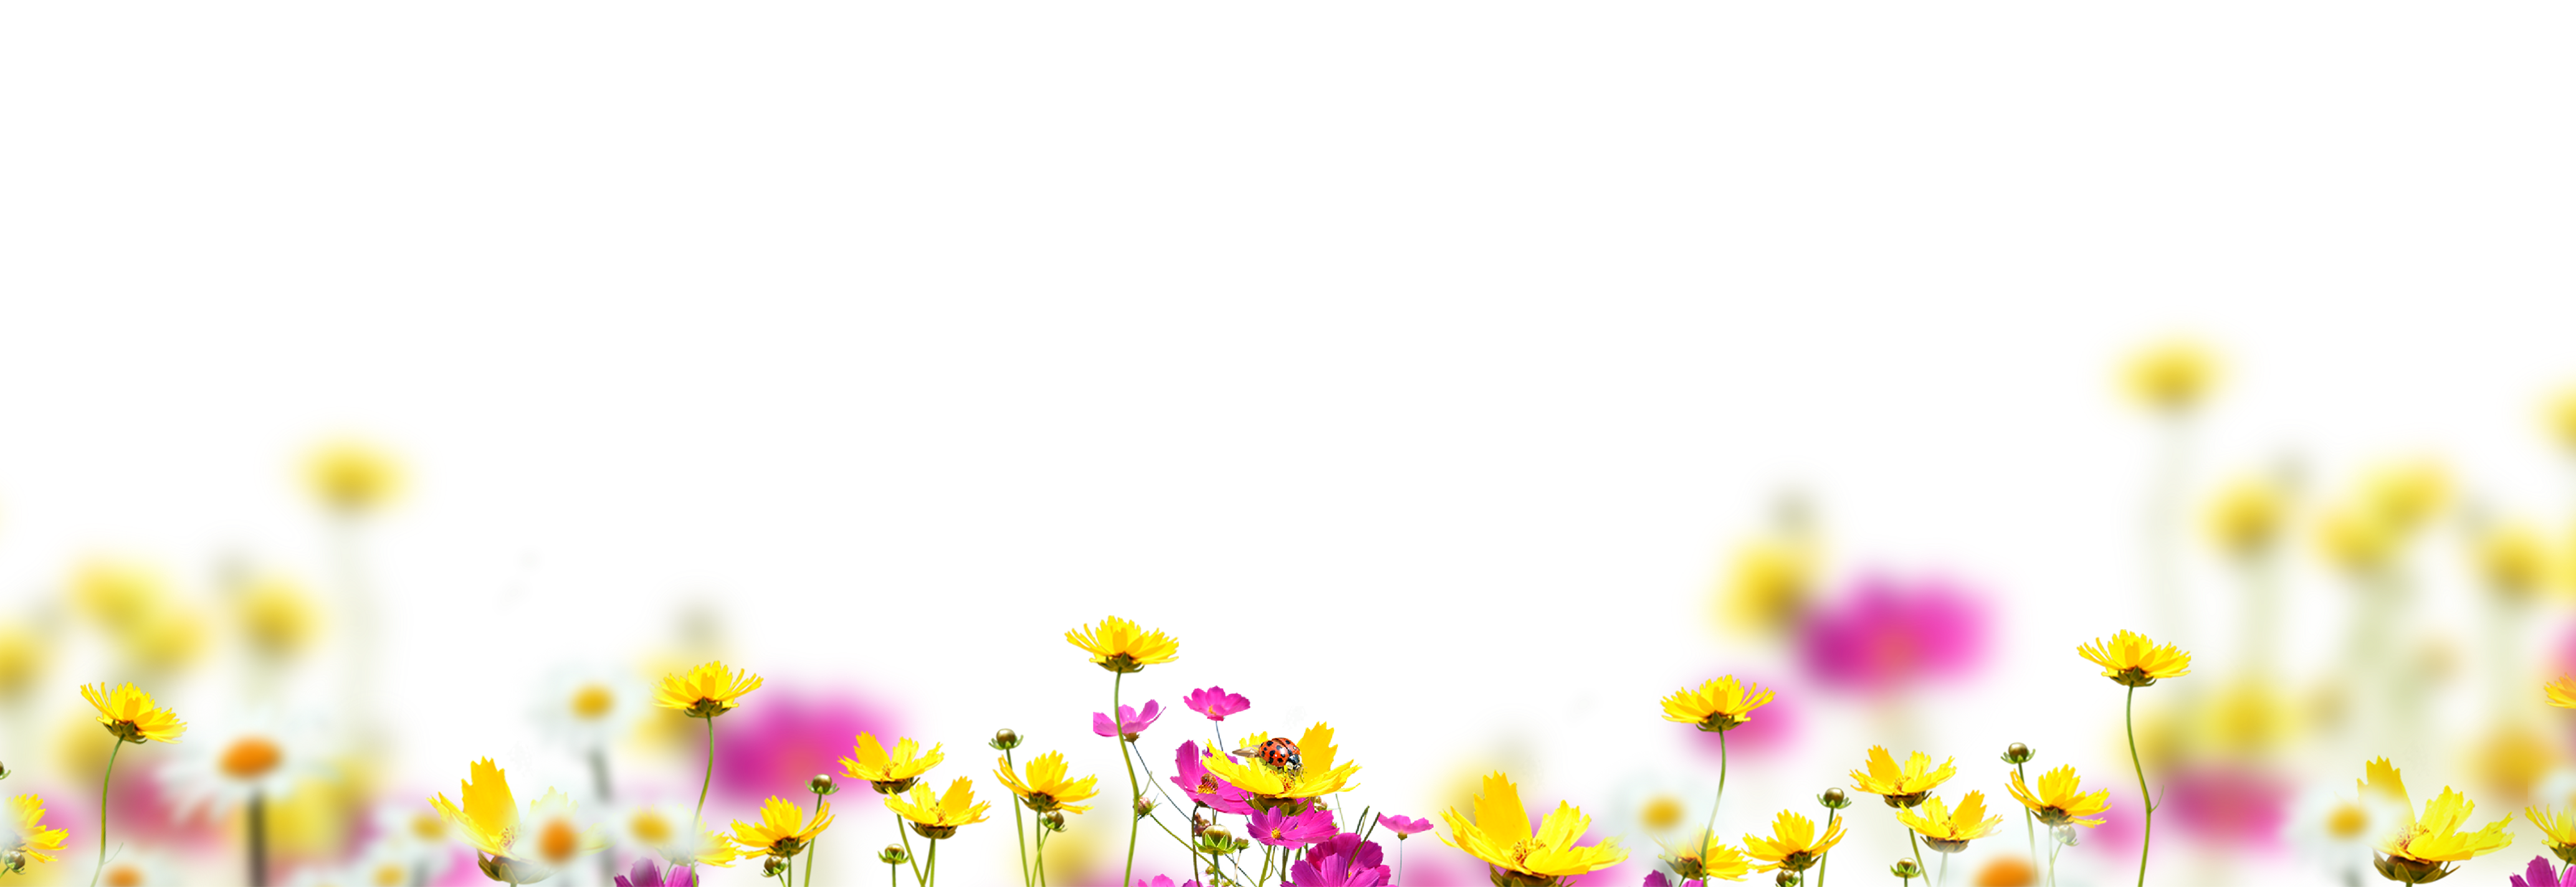 Blowing glitter png. Free flower overlay photoshop